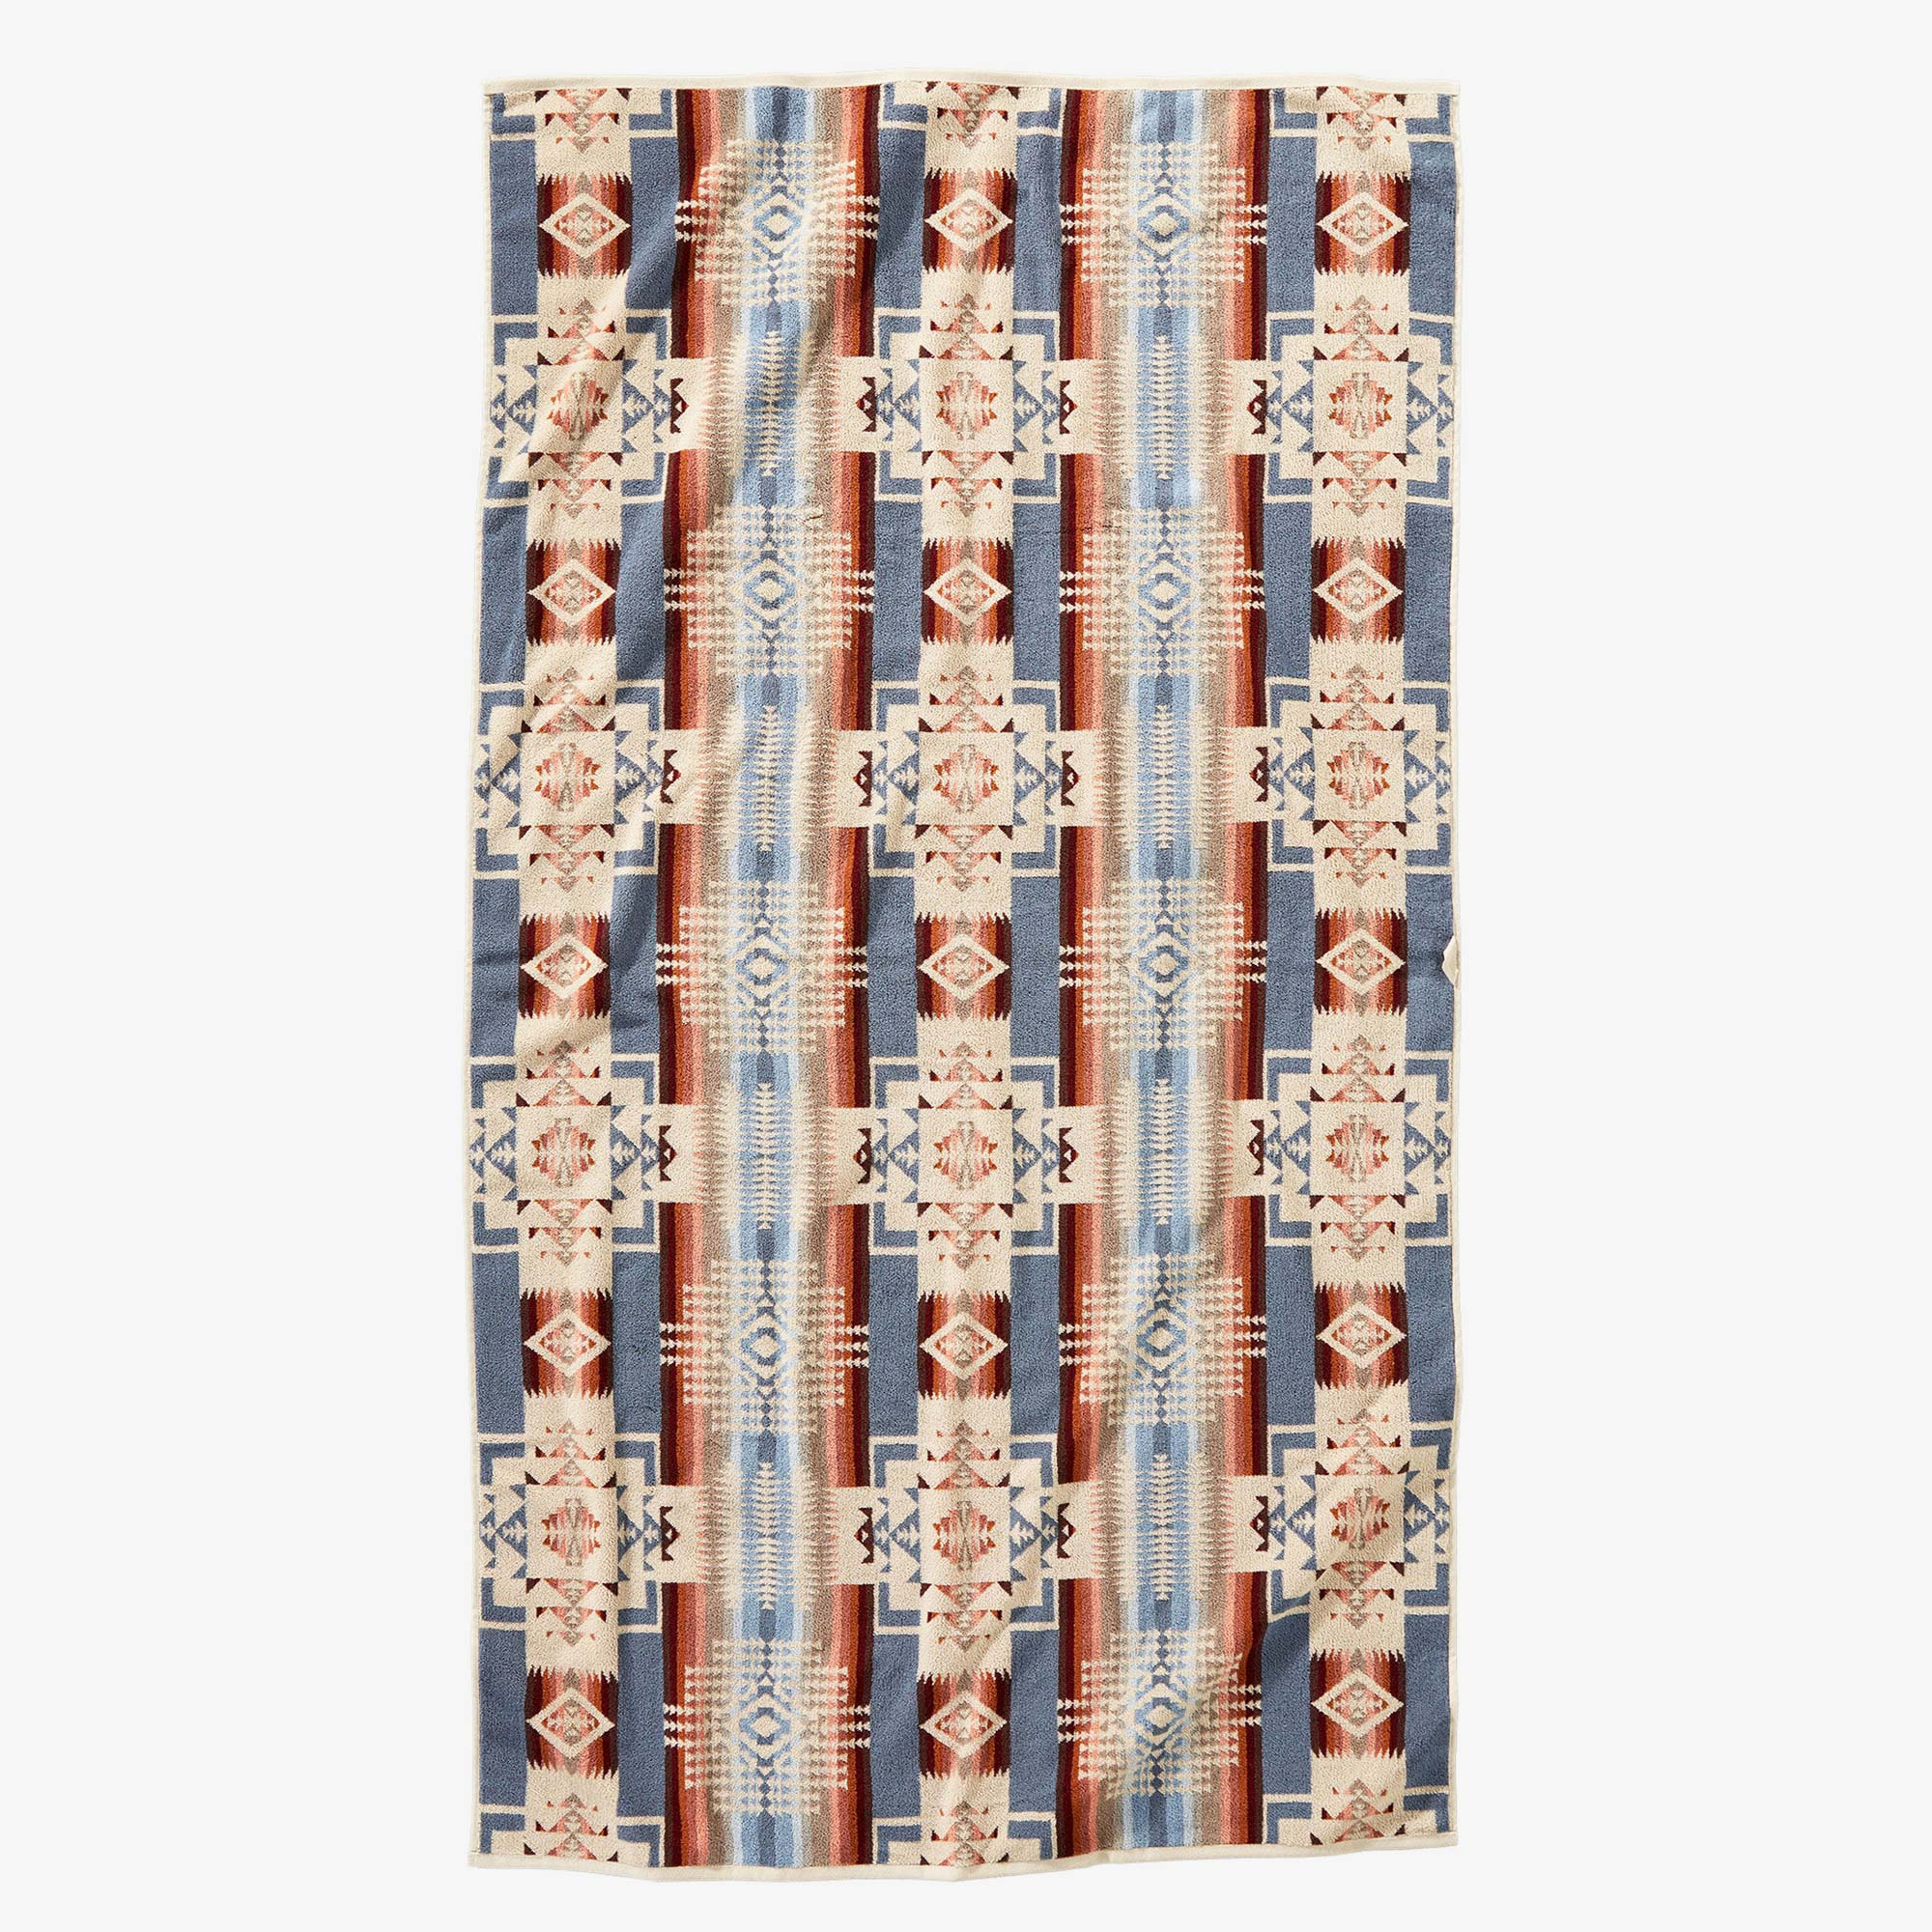 Pendleton Chief Joseph Rosewood Beach Towel - Cream 2